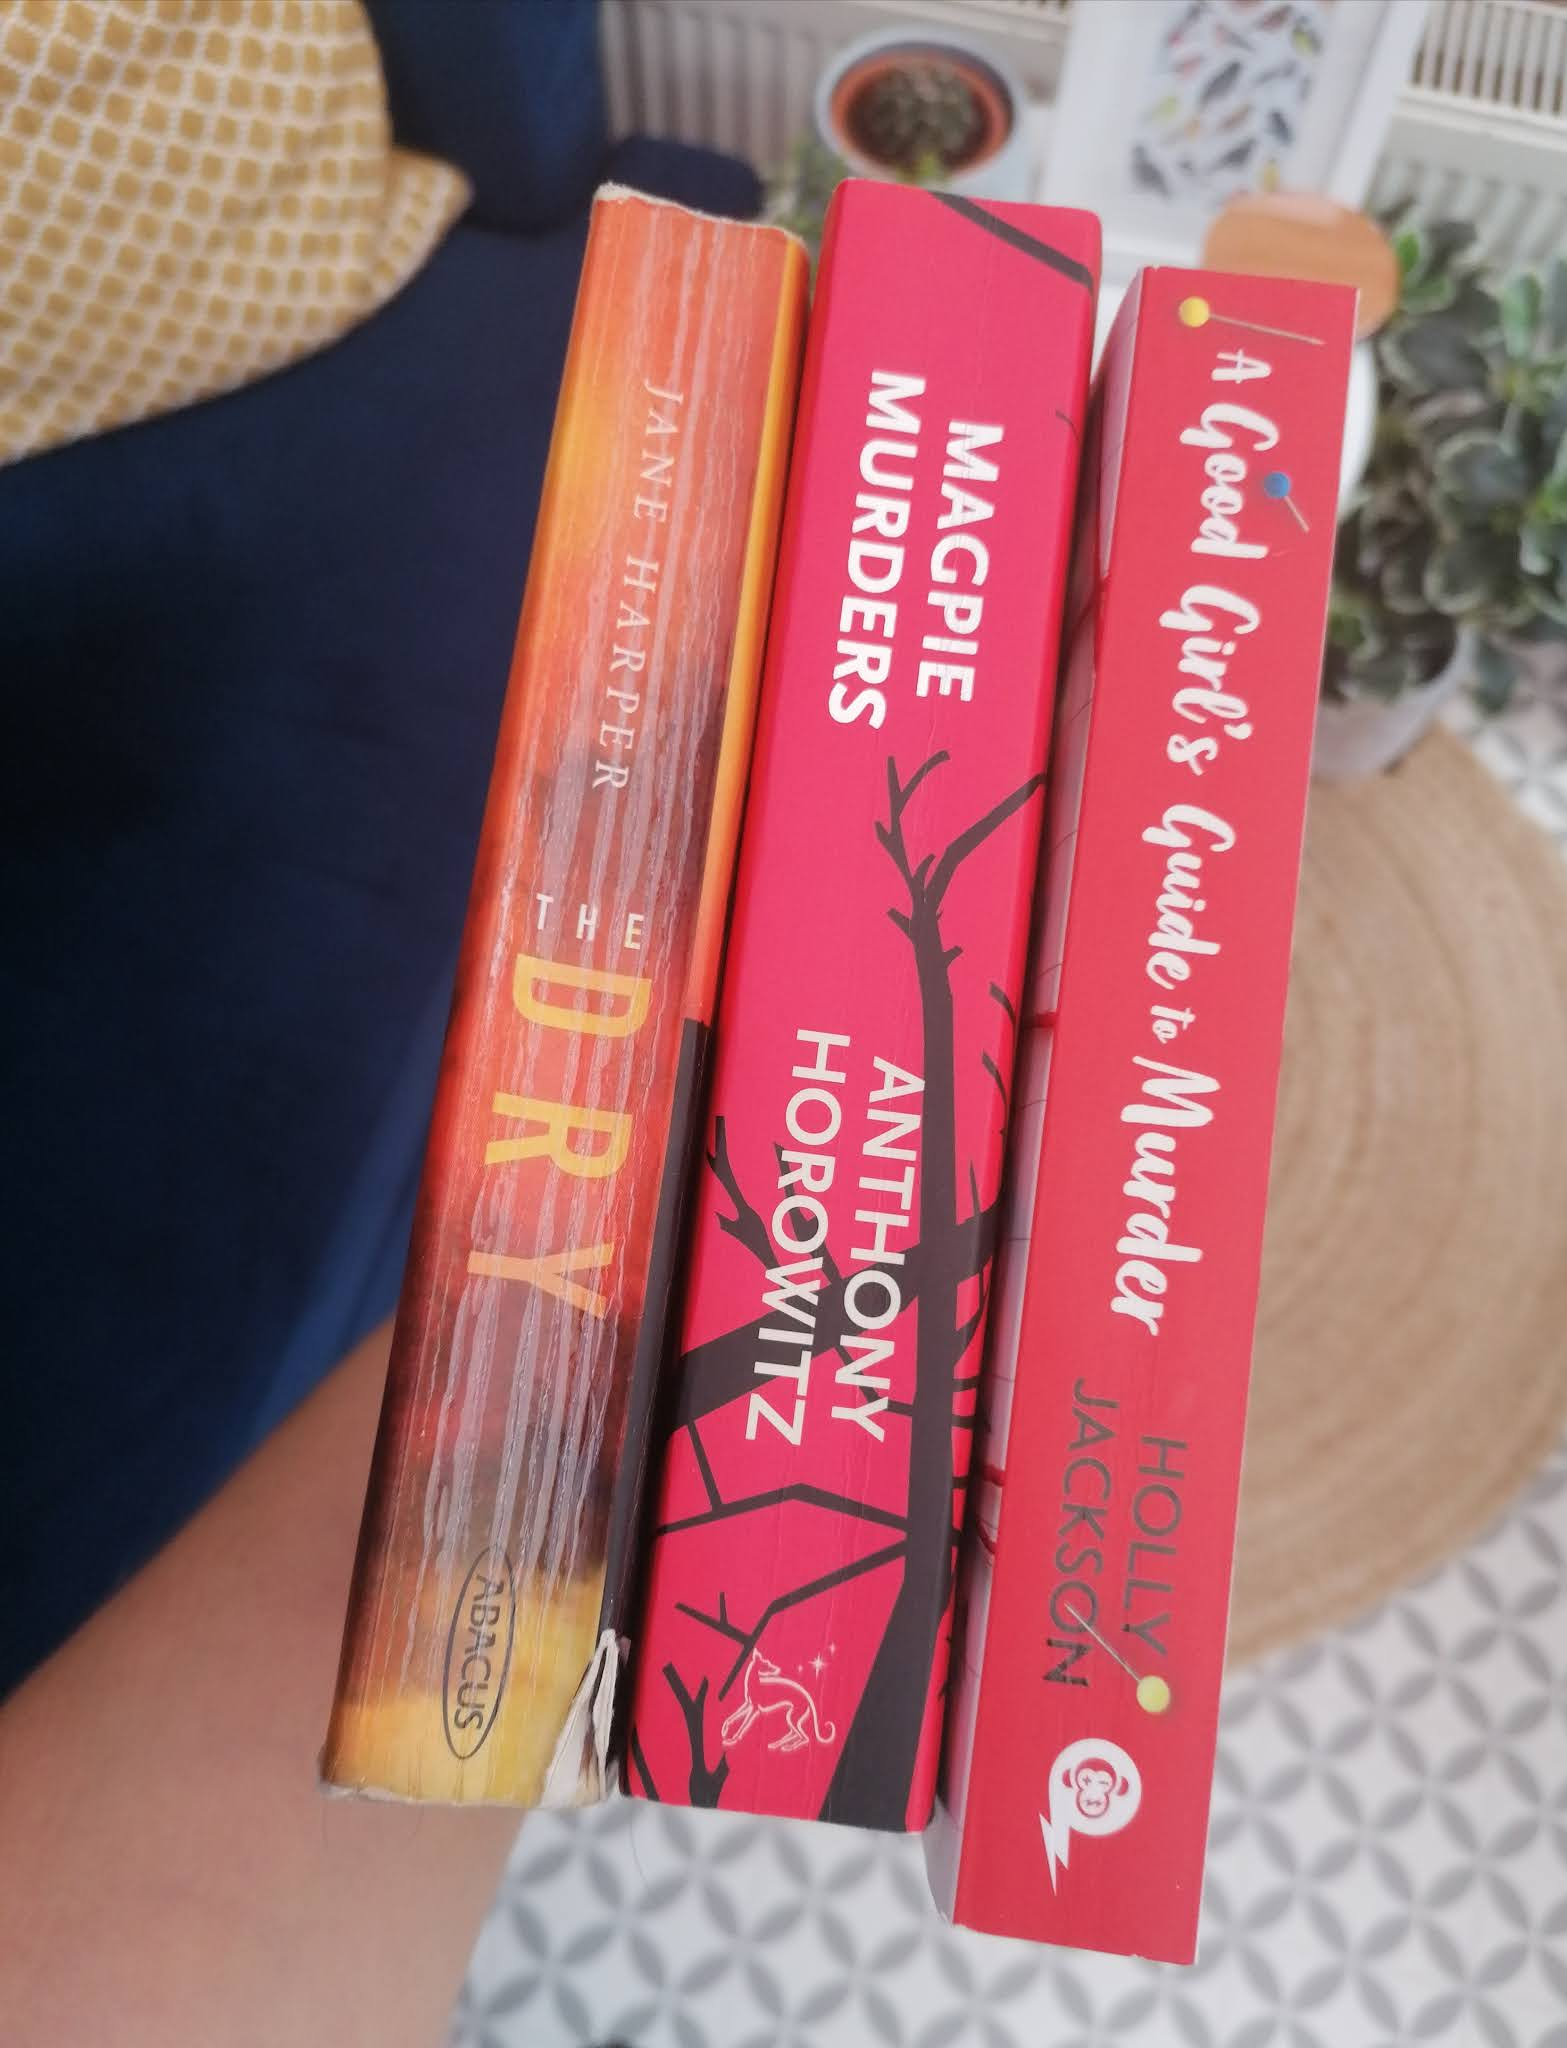 Three thriller books I have read recently